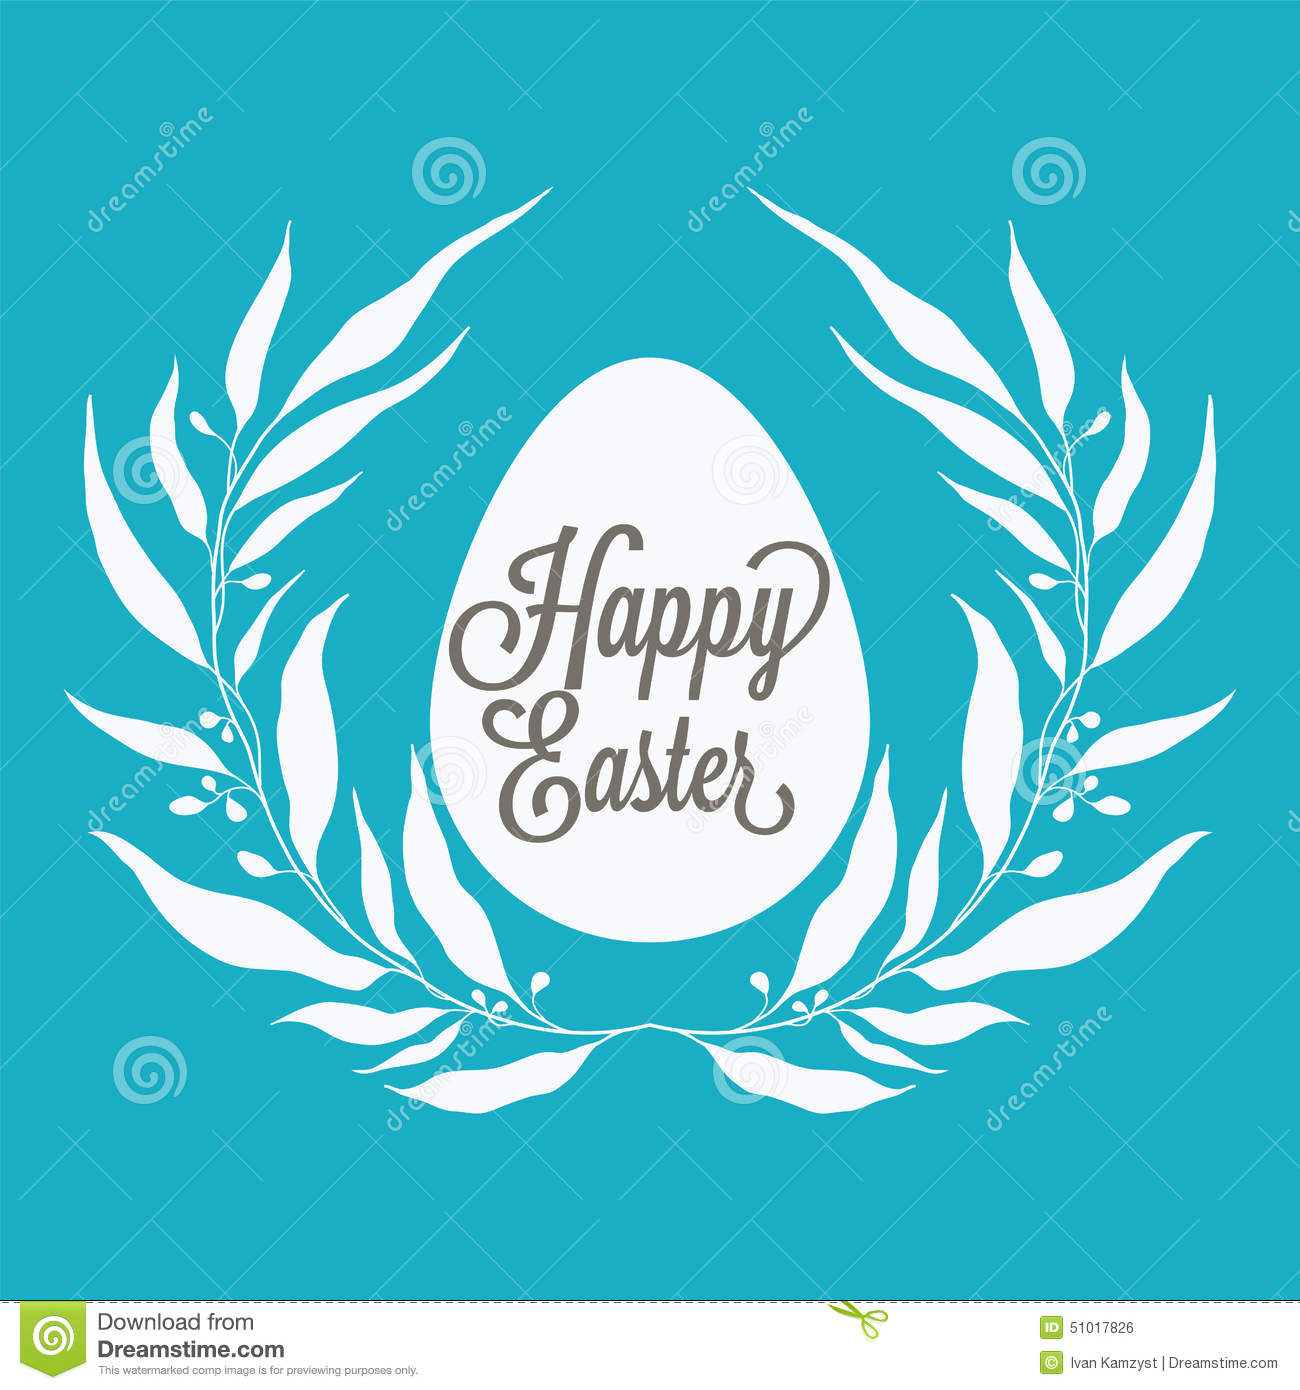 Happy Easter Greeting Card With Floral Decorative Elements Quot